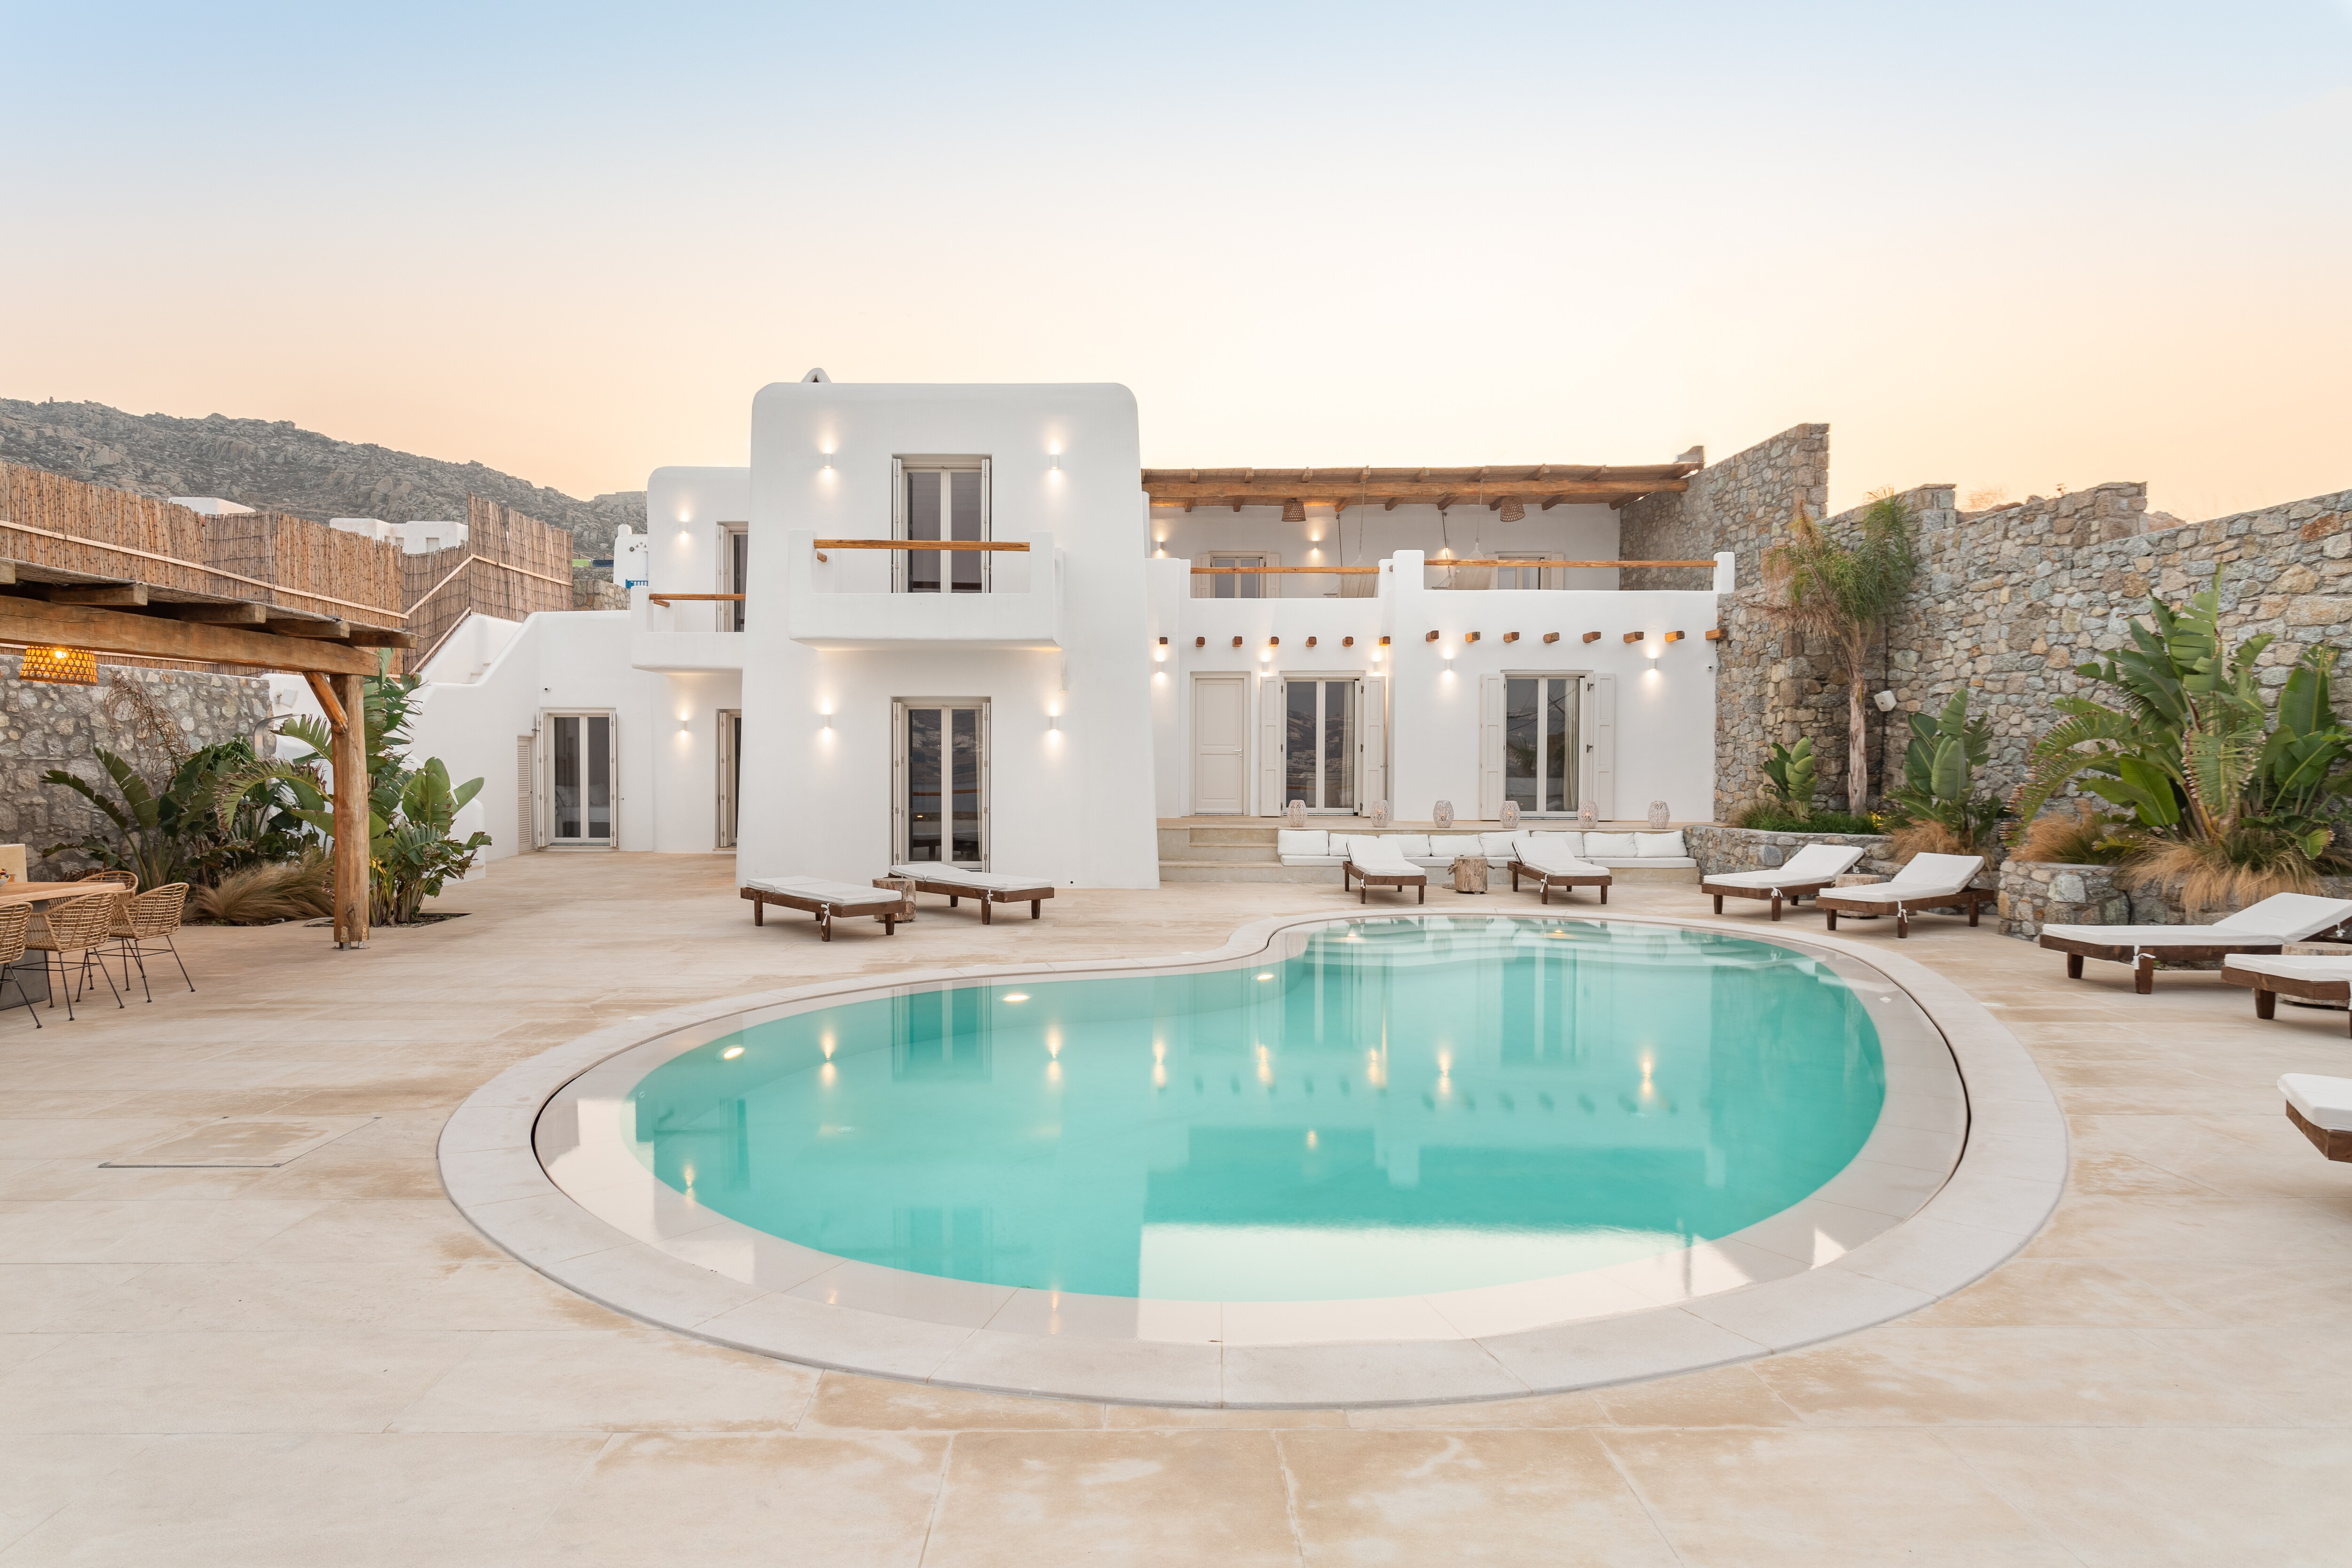 Property Image 1 - Majestic large villa with private pool